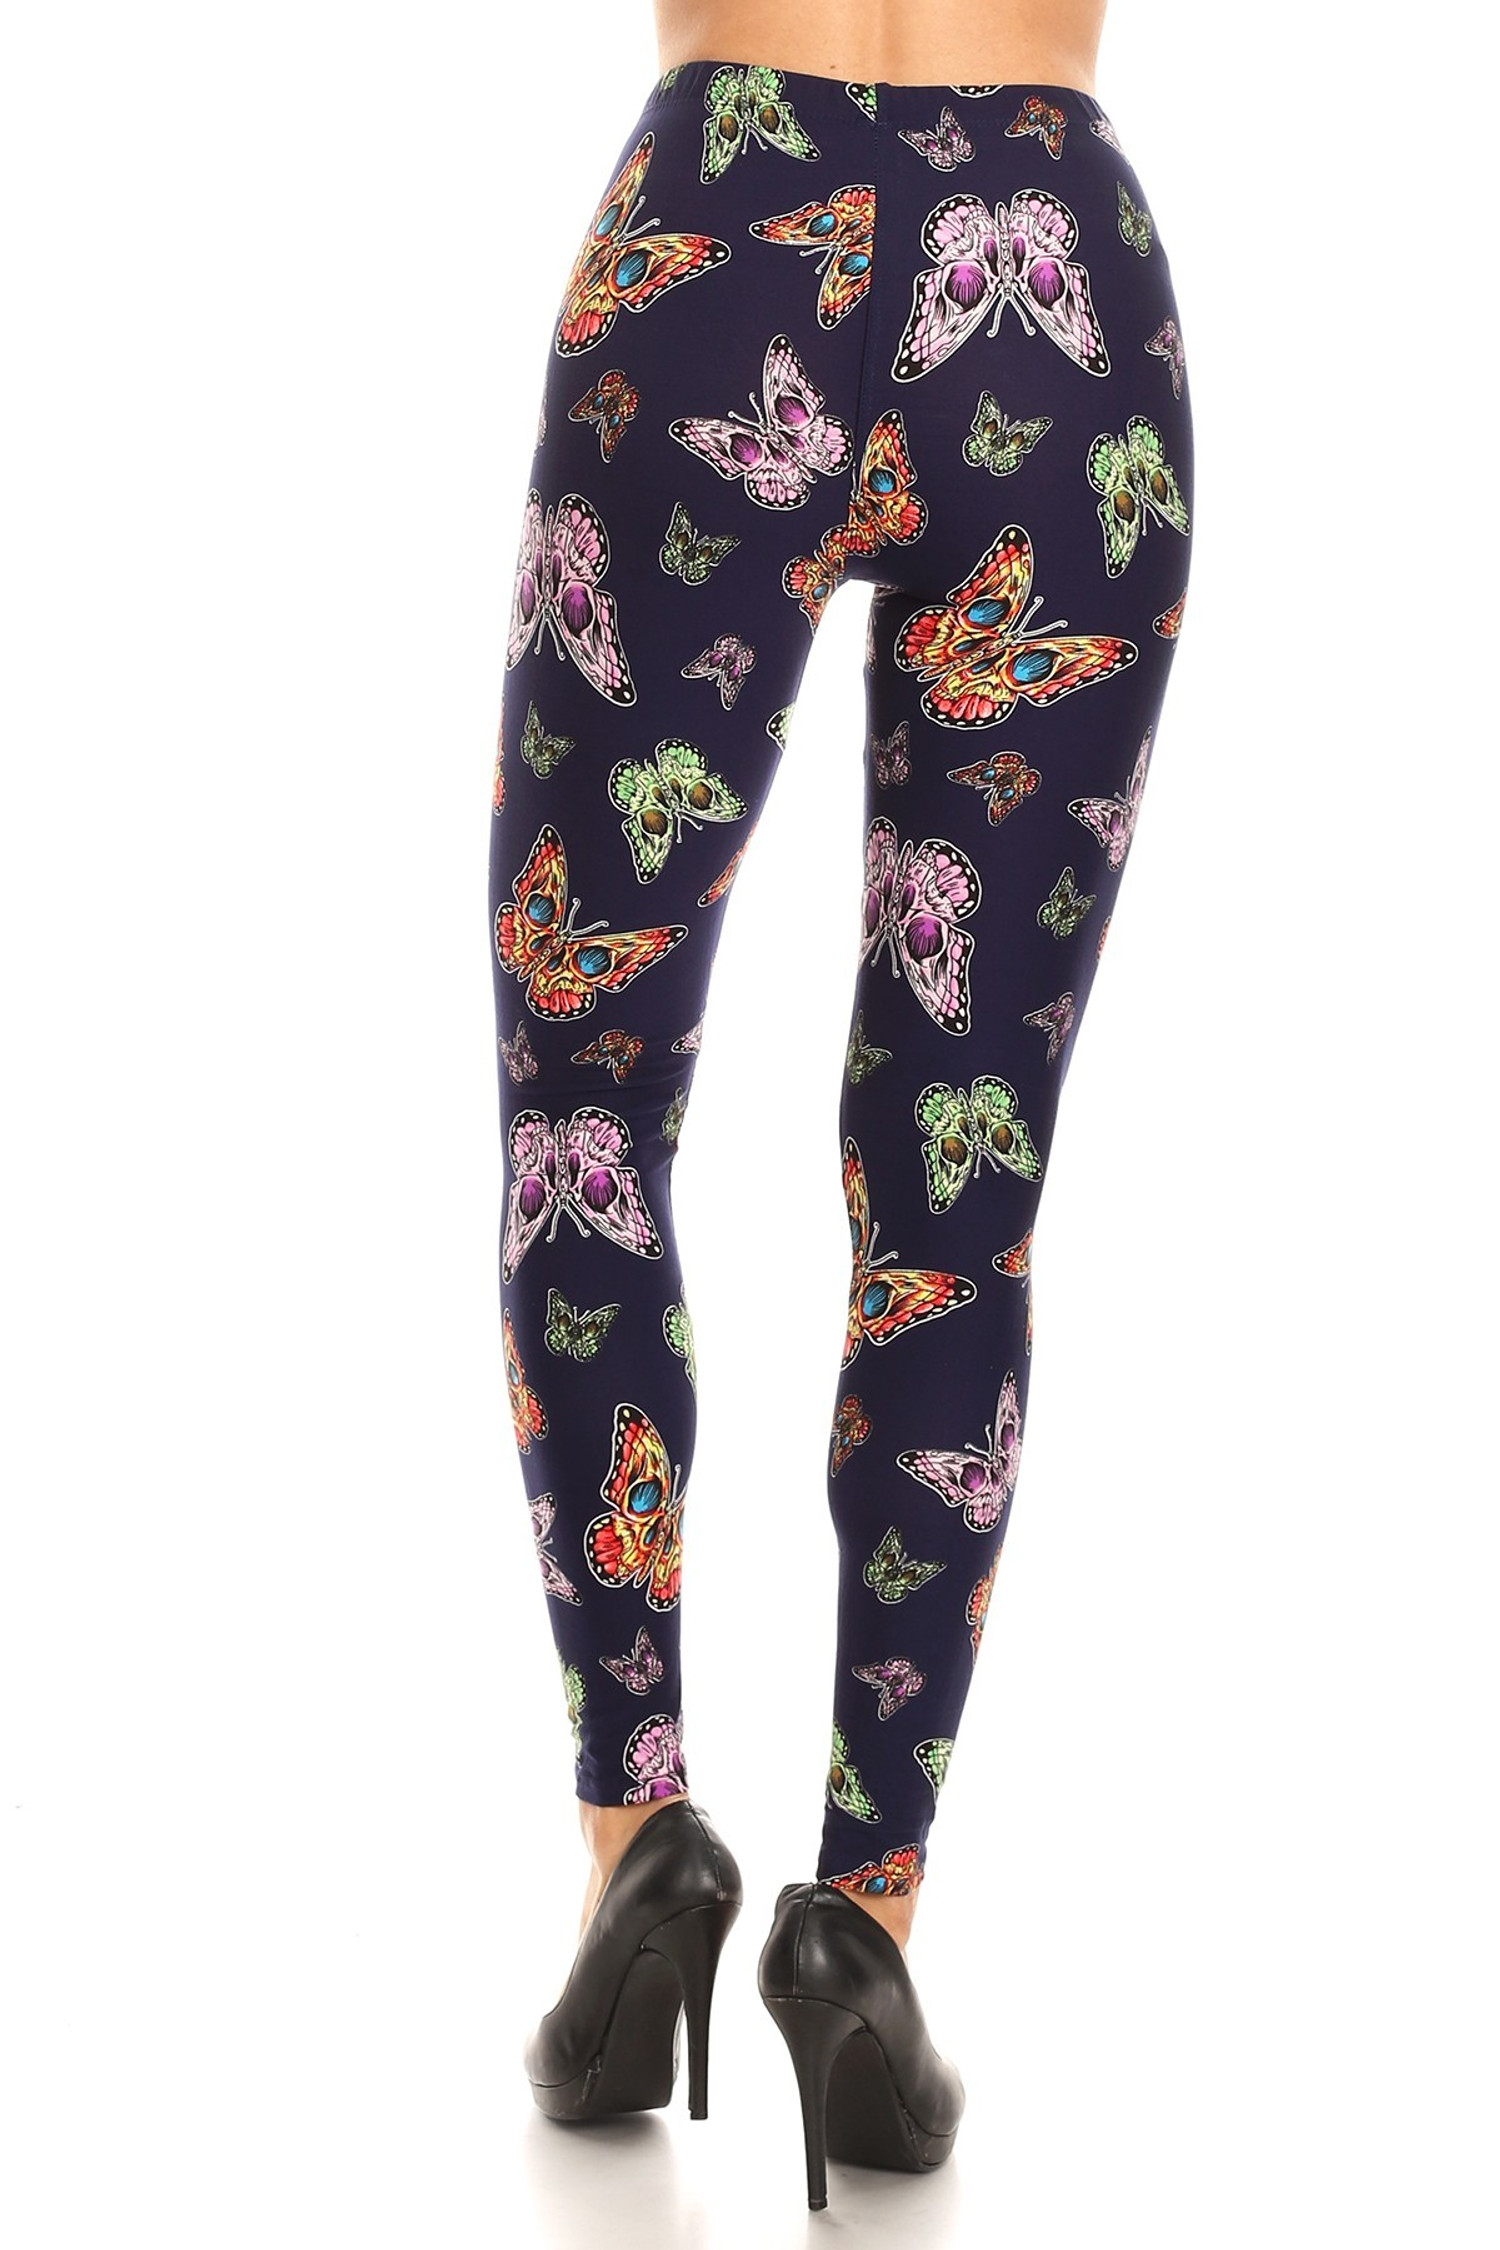 Brushed Blue Moon Colorful Butterfly Extra Plus Size Leggings - 3X-5X